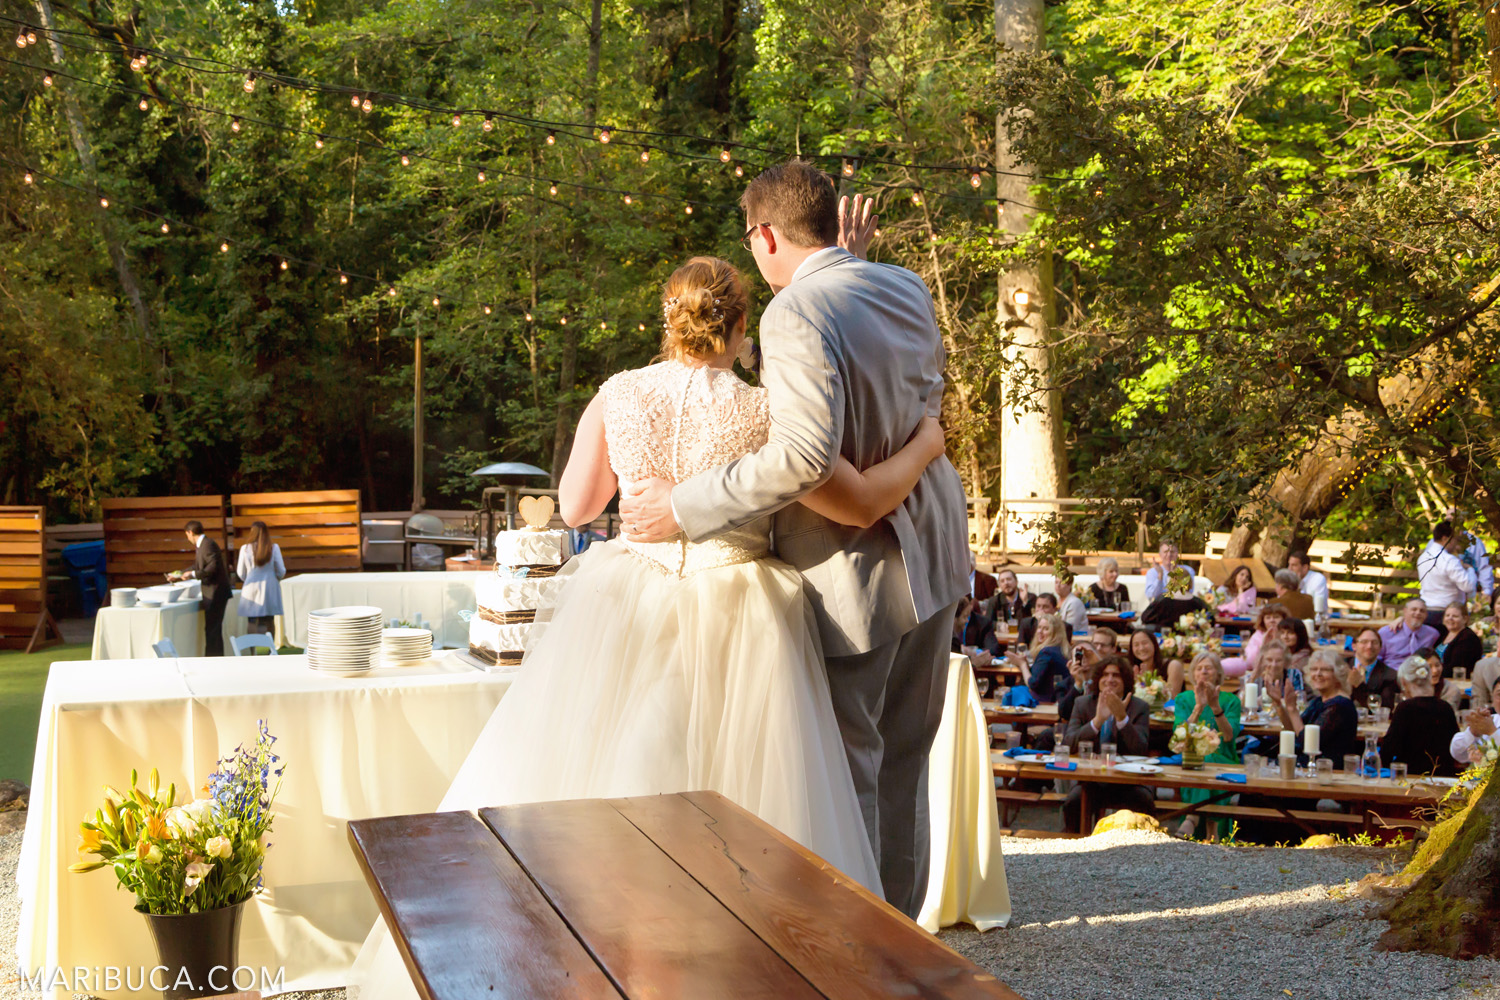 Bride and groom face guests before cutting the wedding cake in the Saratoga Springs Wedding